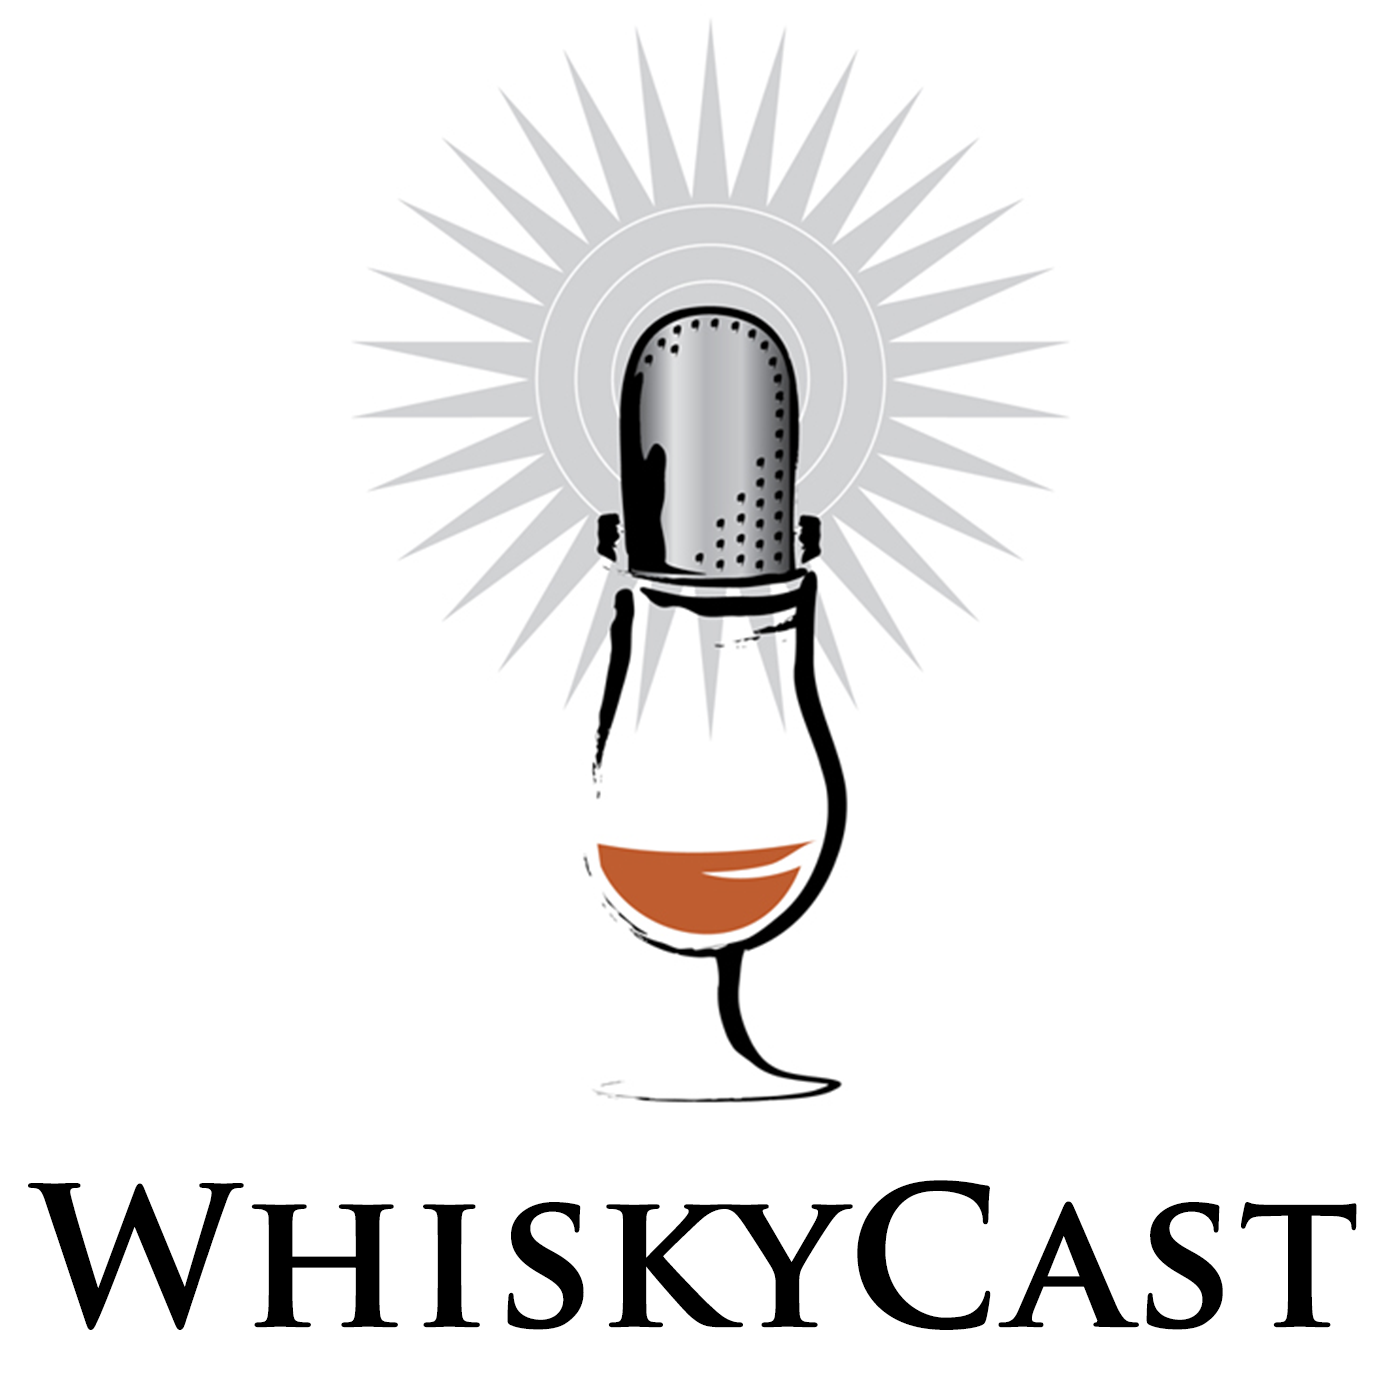 WhiskyCast Episode 438: August 18, 2013